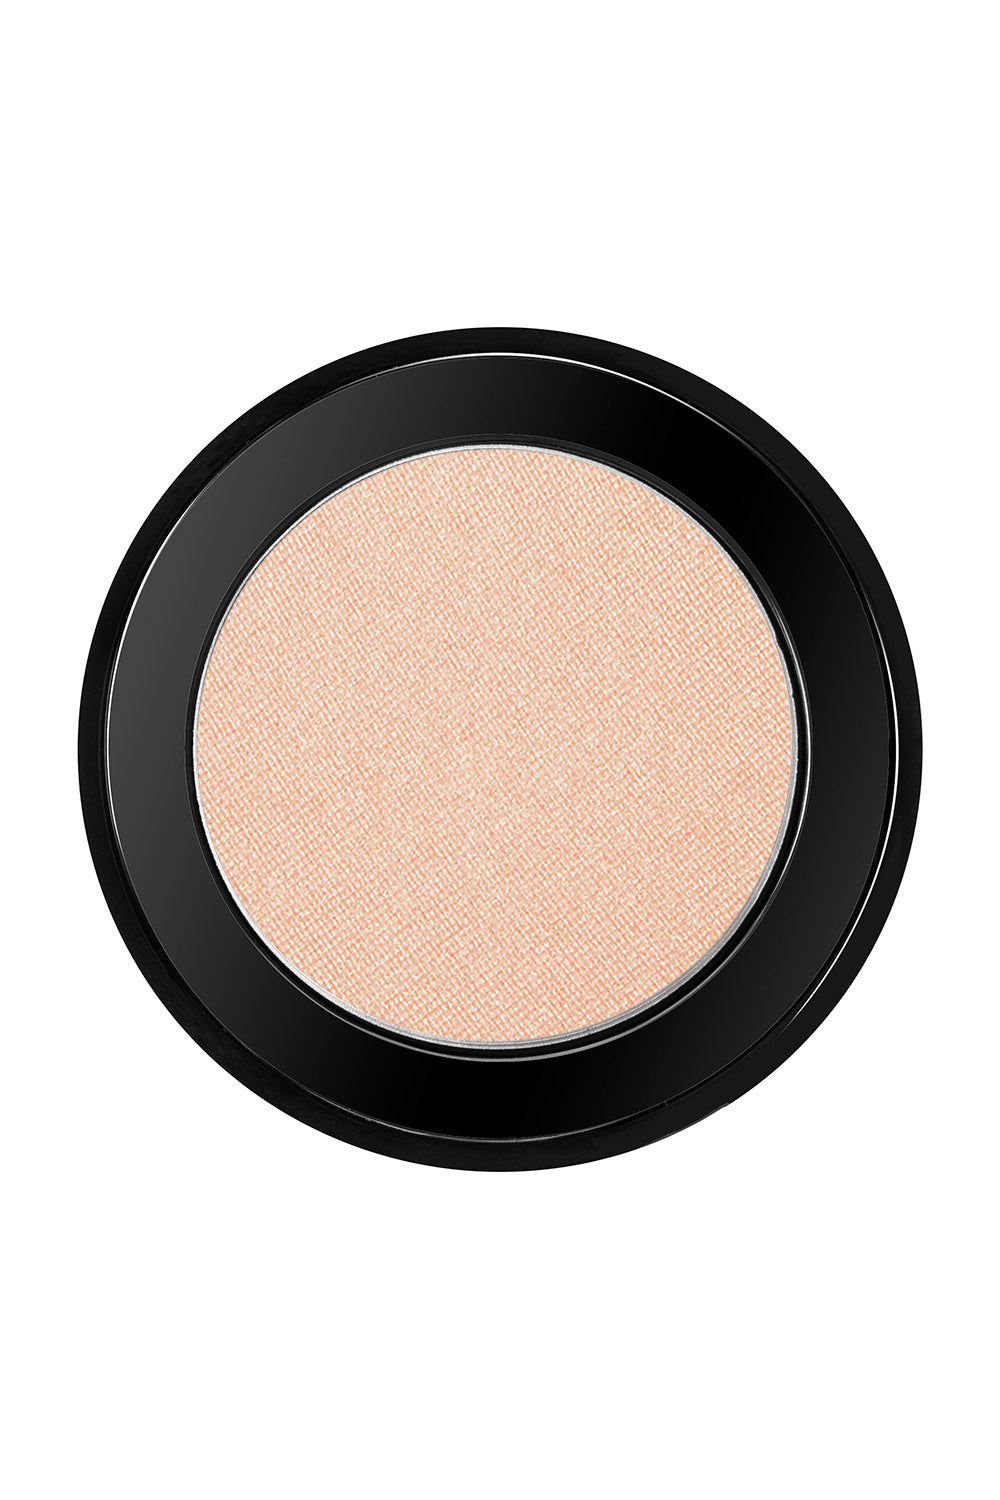 Type 2 Eyeshadow - Sandstone